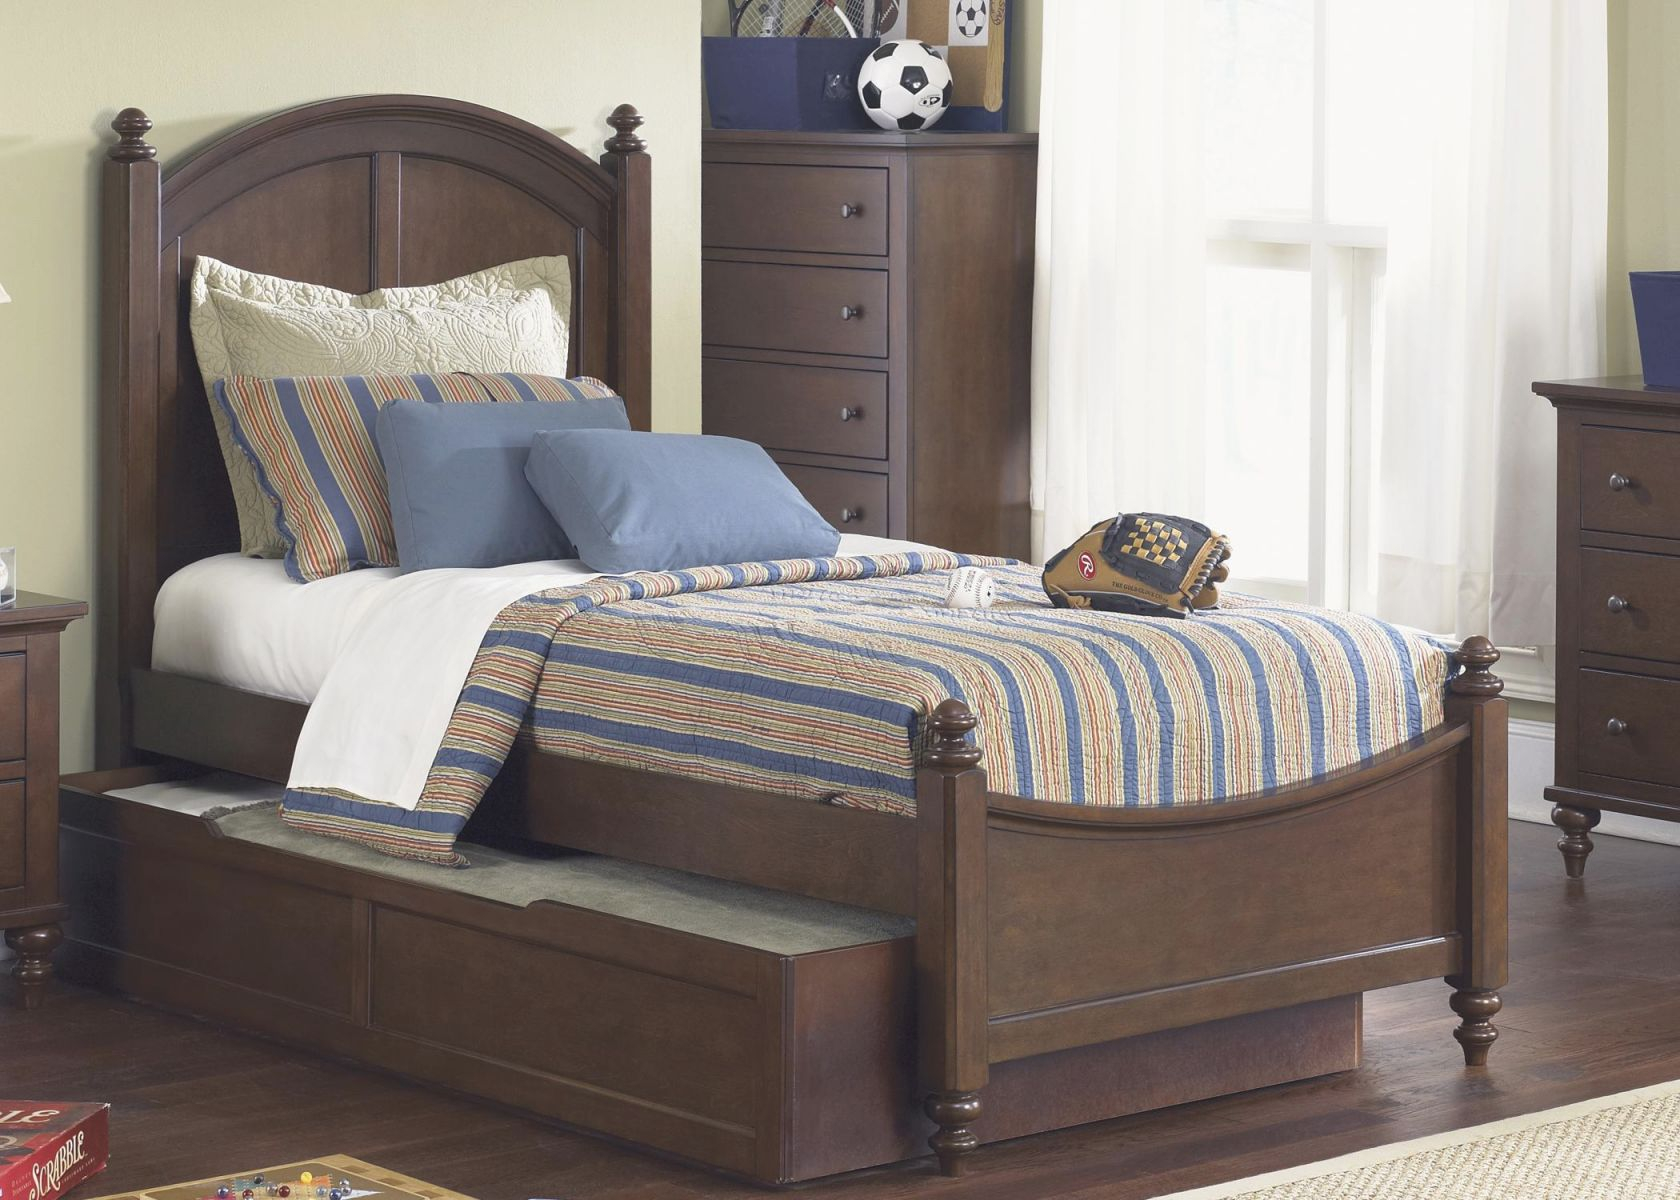 Abbott Ridge Youth Bedroom Full Panel Bed With Trundleliberty Furniture At Lindy's Furniture Company inside Awesome Full Size Bed With Trundle Bedroom Set